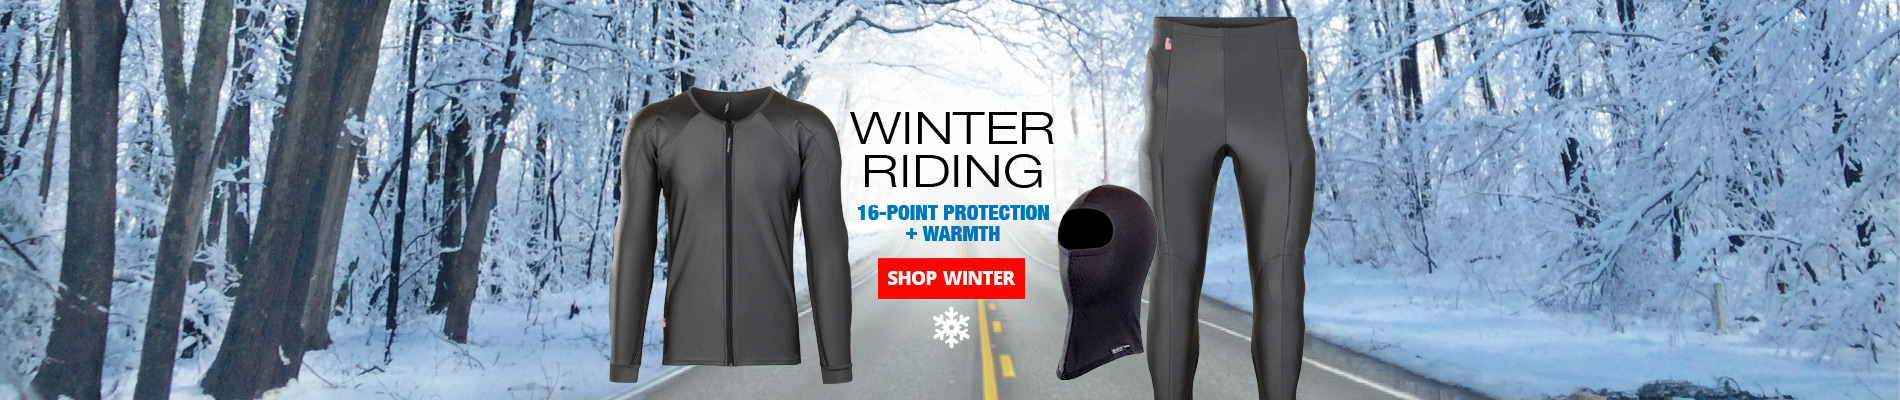 Winter riding graphic with no free balaclava